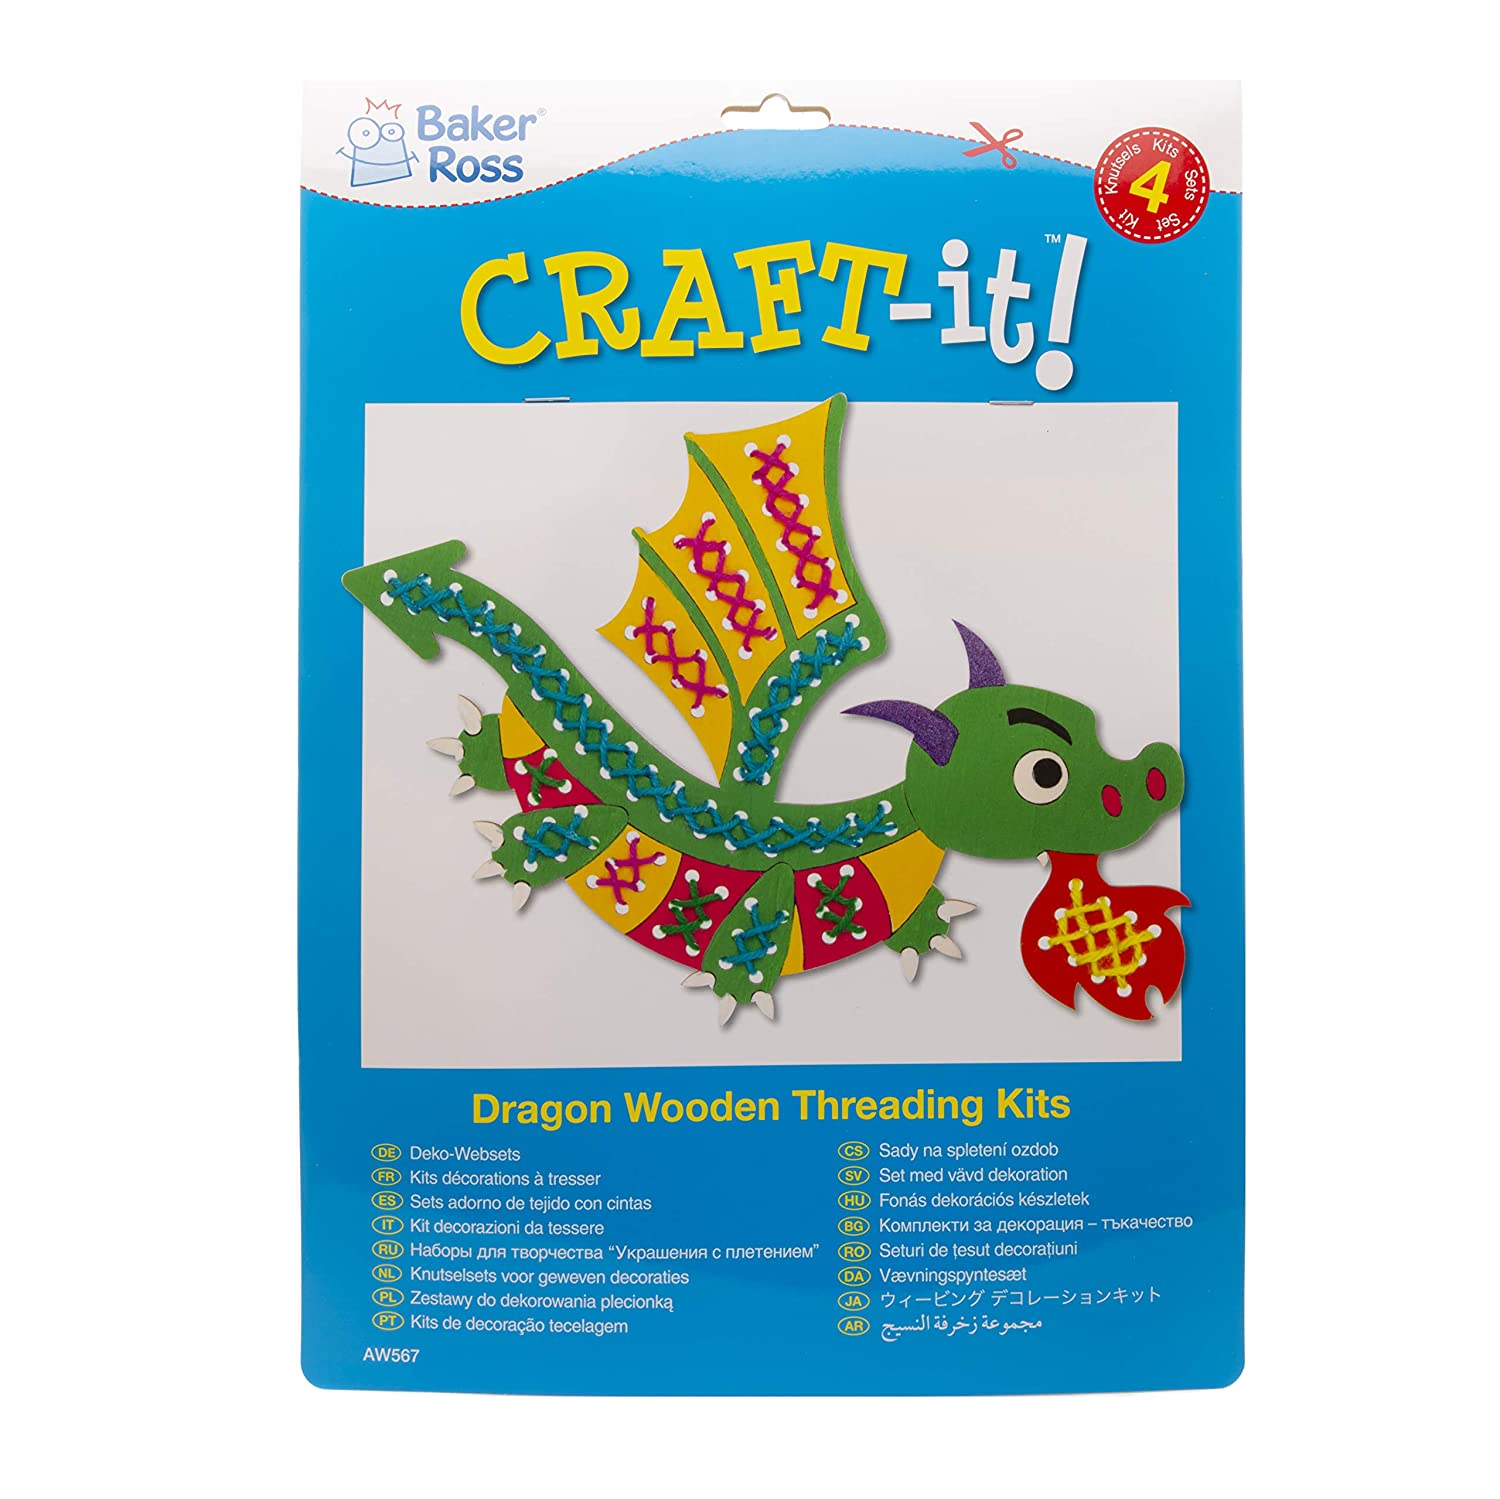 Dragon Making Kit with Wood Template Pack of 4 Baker Ross Dragon Wooden Threading Kit Colored Wool and Plastic Needle